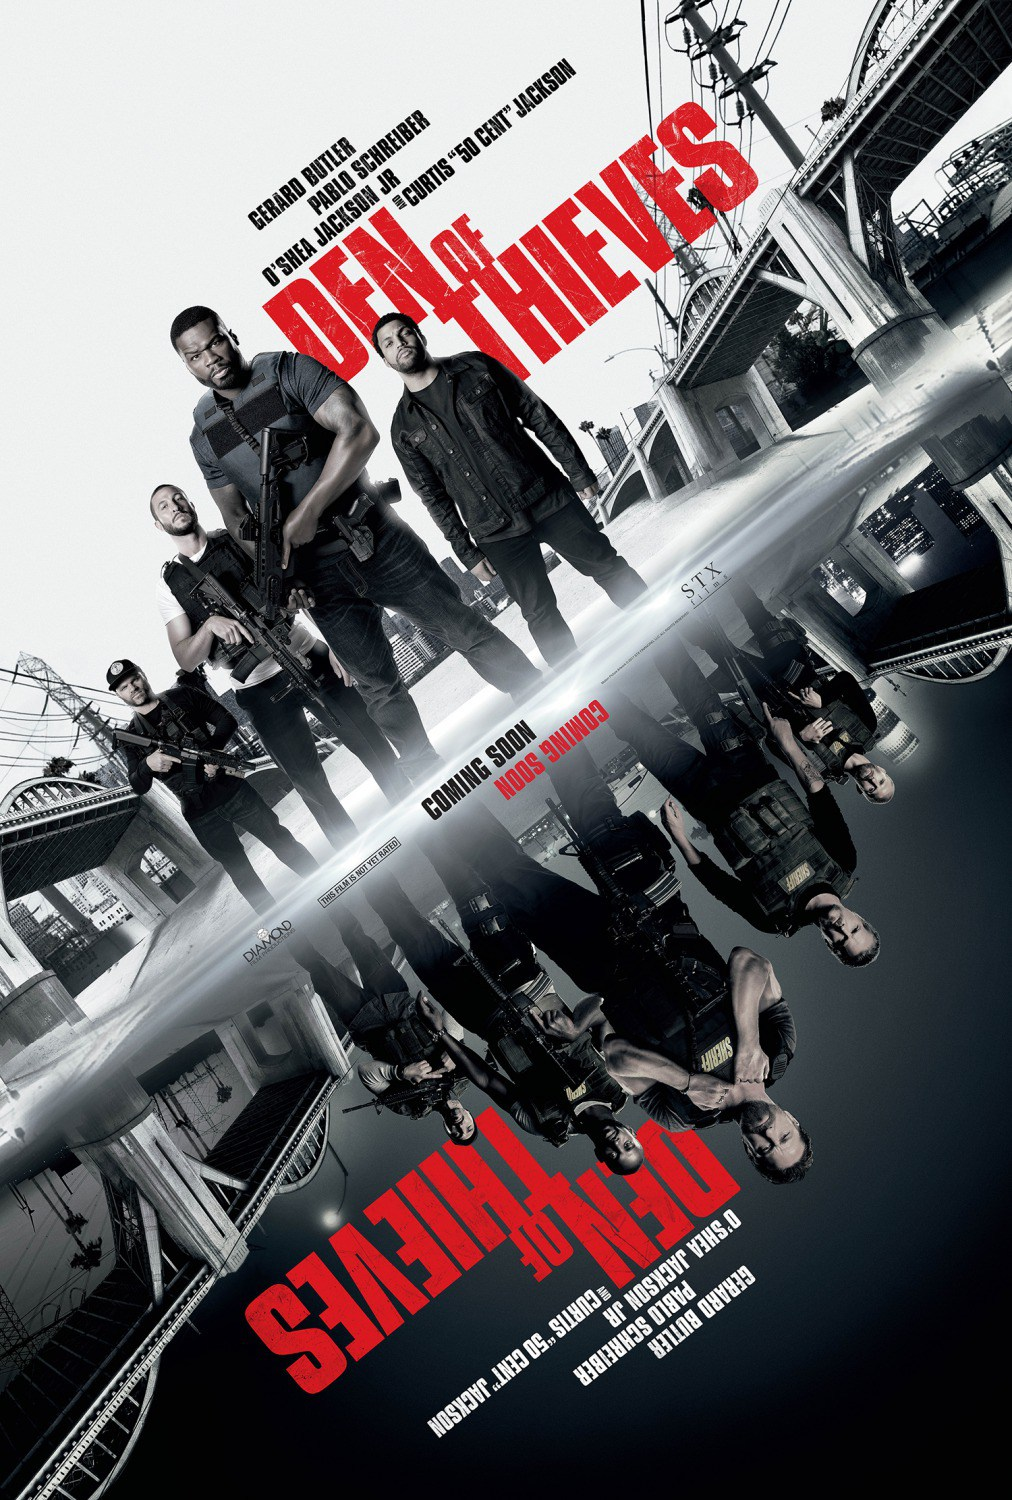 Den of Thieves HD Wallpapers 7wallpapersnet 1012x1500